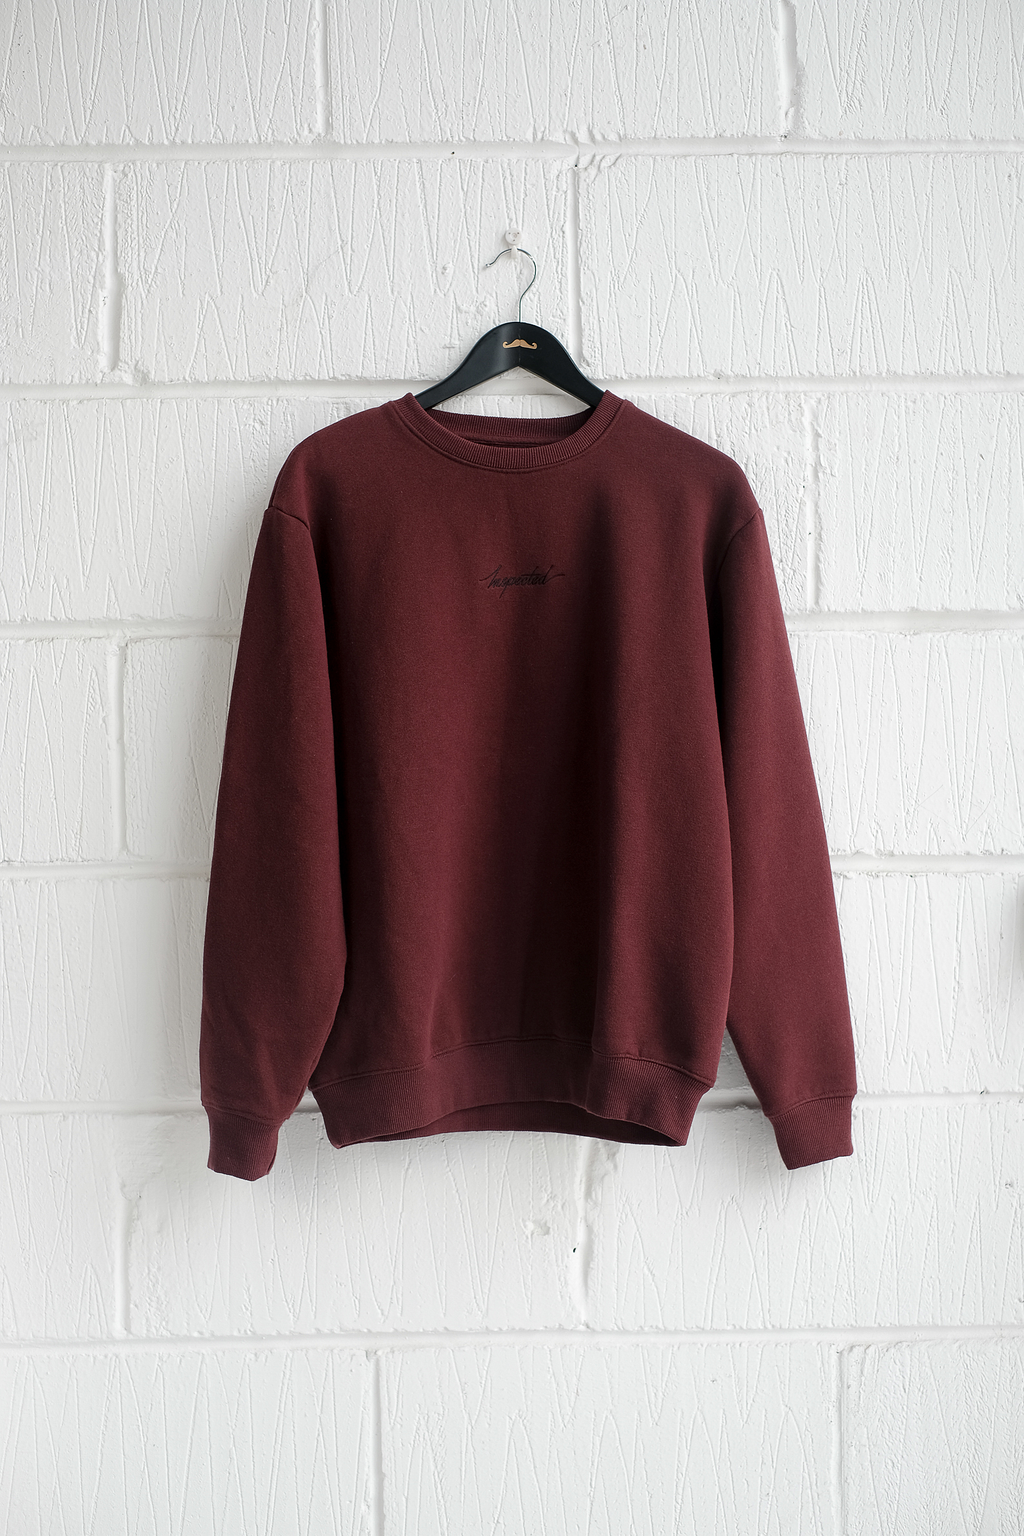 SAMPLE SWEATSHIRT — RUBY